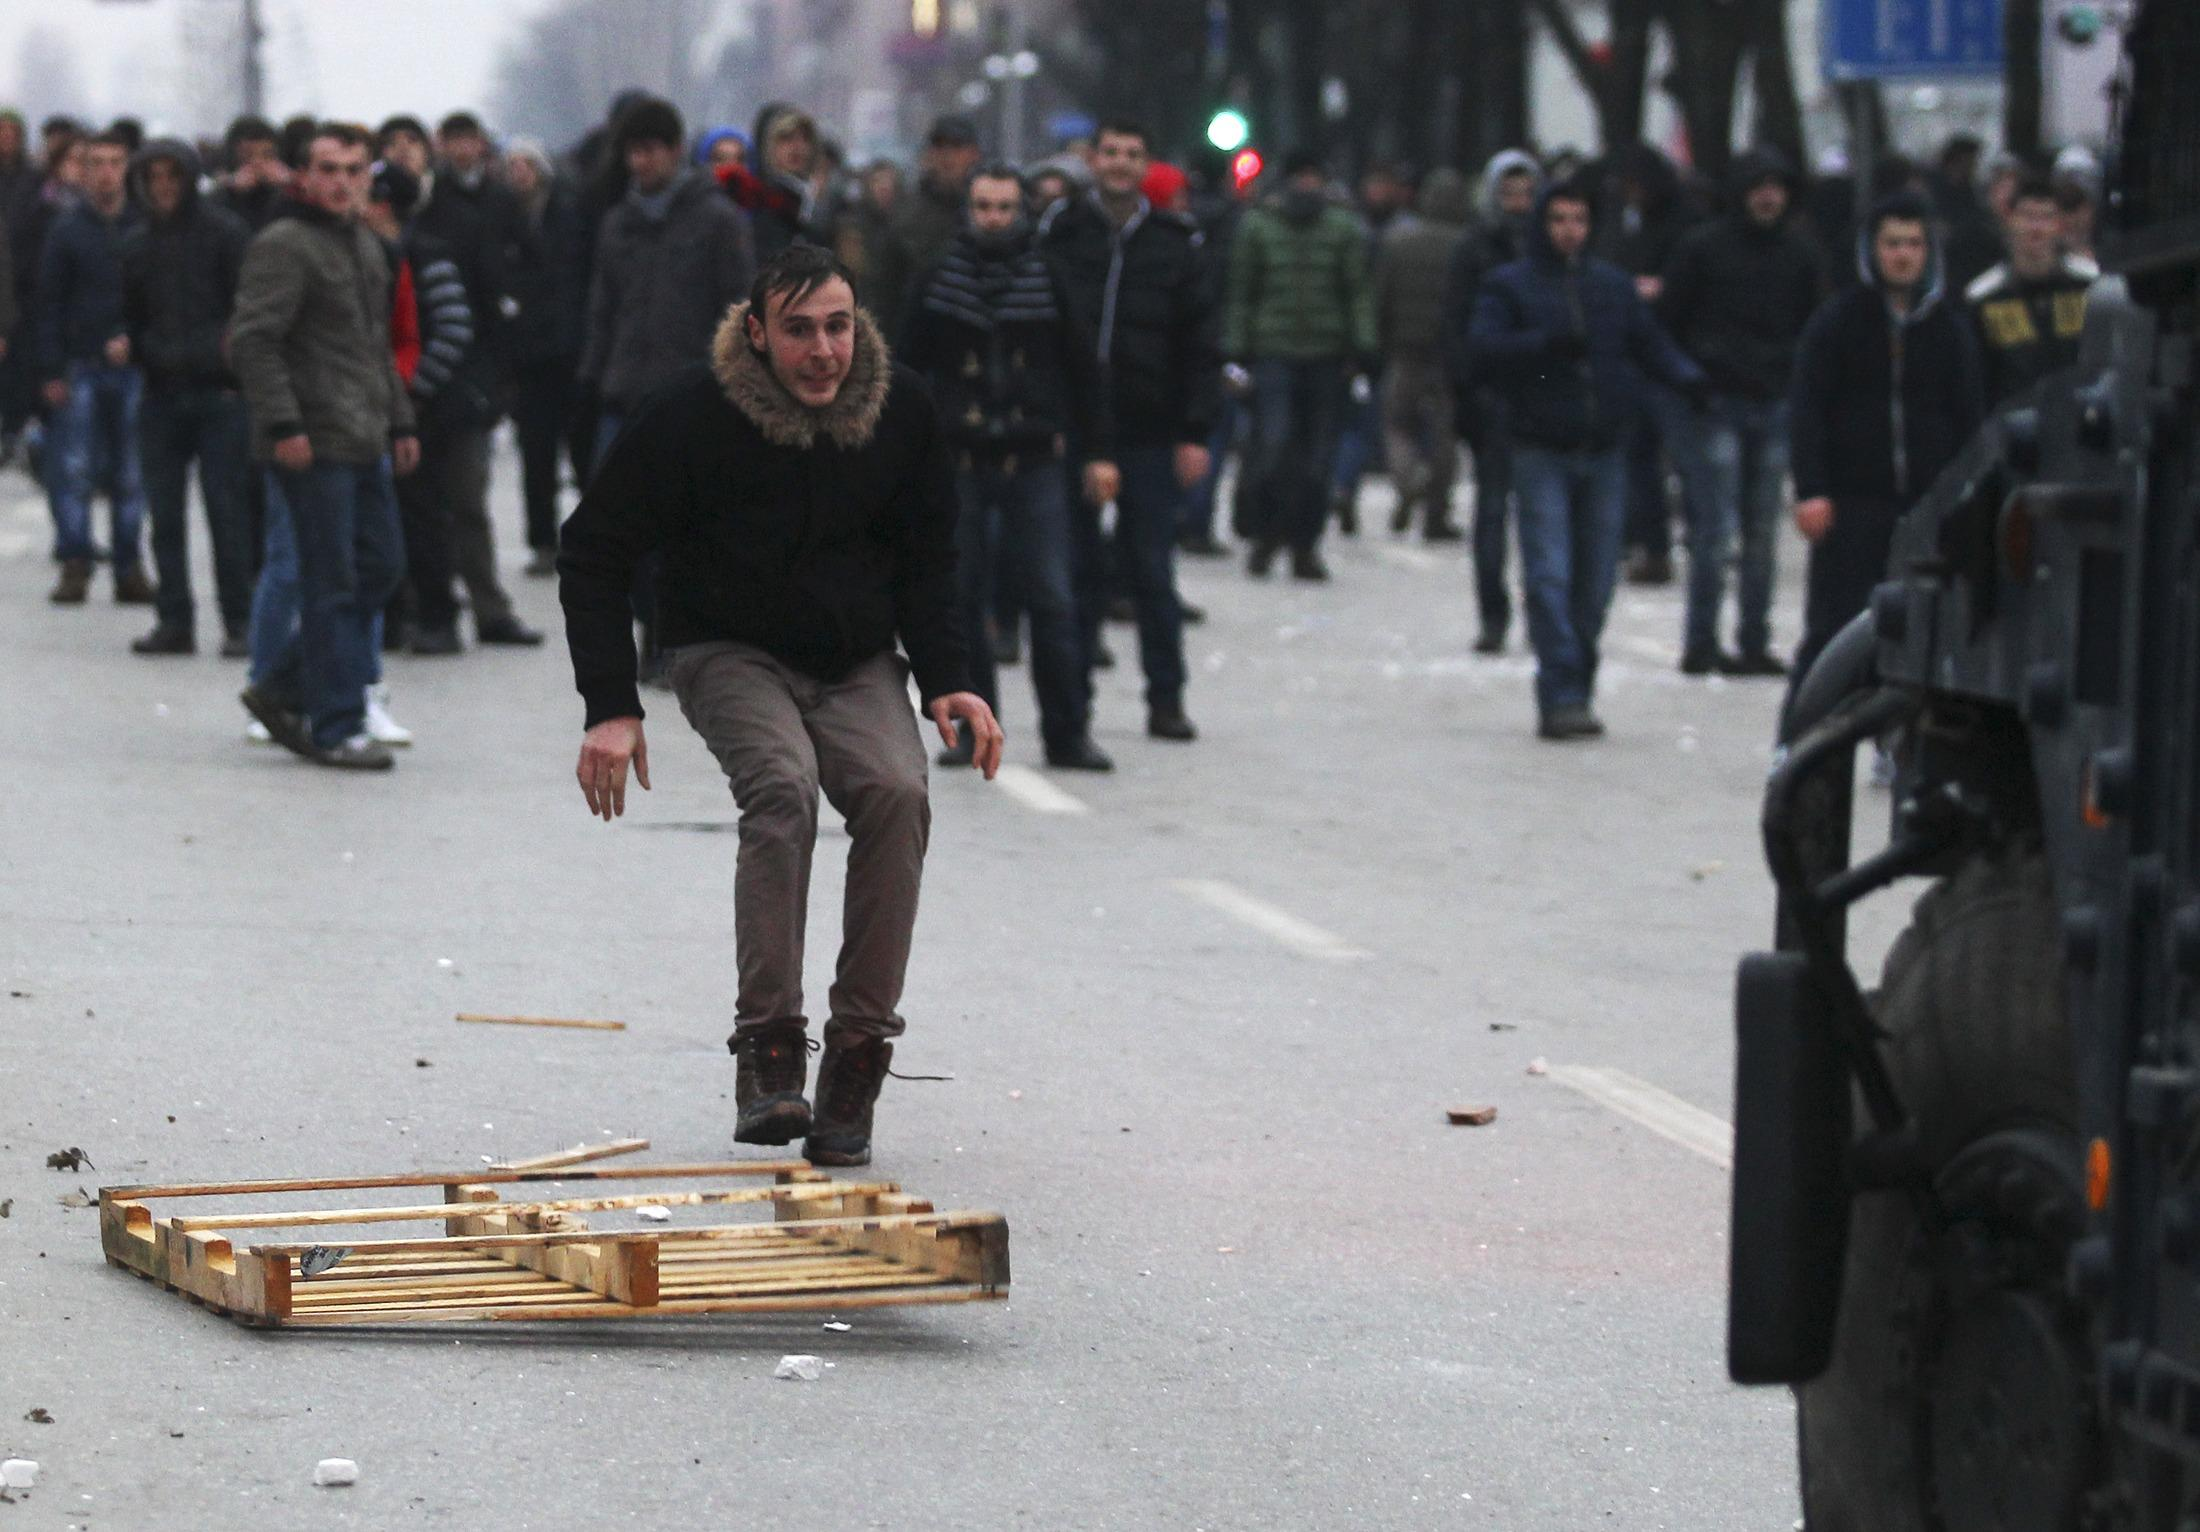 2015-01-27T190442Z_1279652436_GM1EB1S08ES01_RTRMADP_3_KOSOVO-PROTESTS